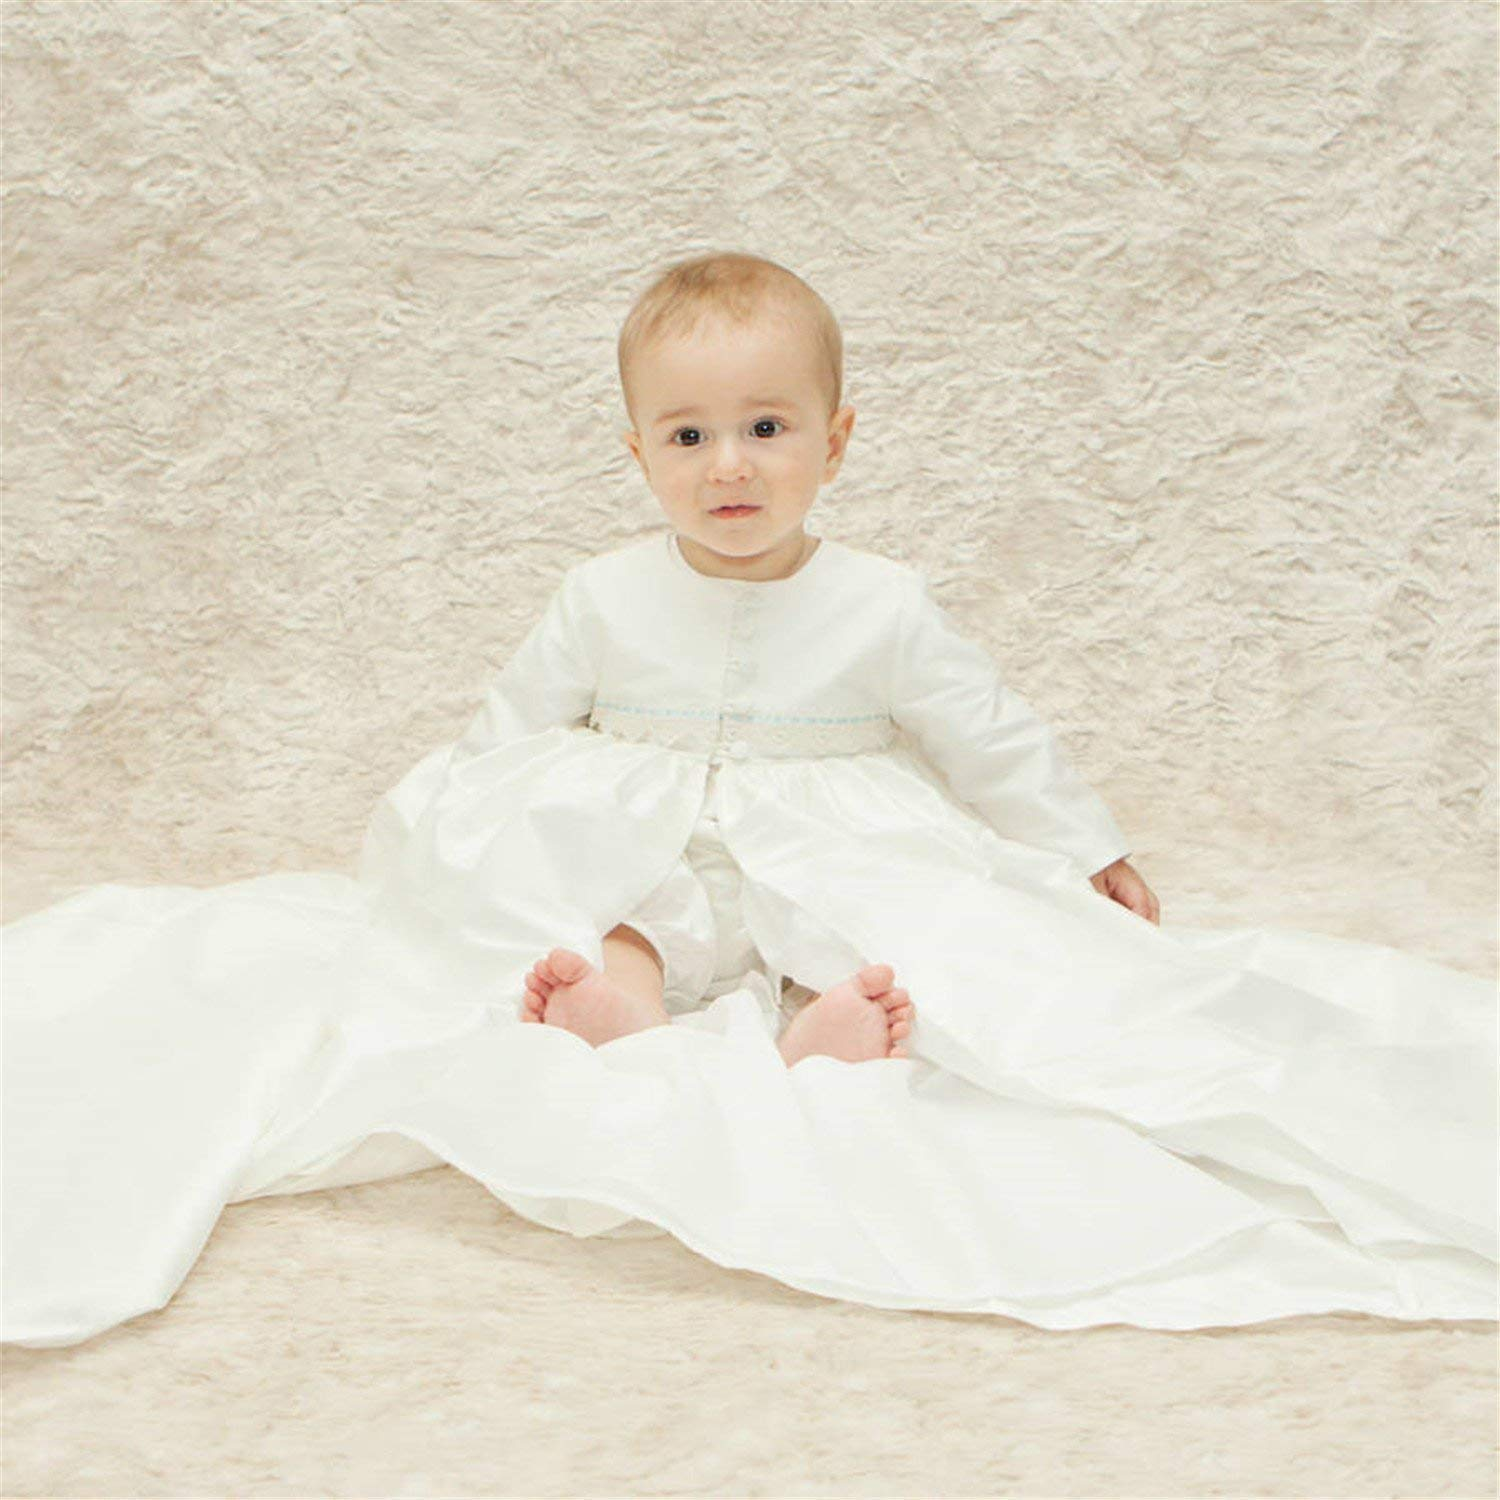 53b087320 ShineGown Ivory Christening Gowns with Bonnet Boy Antique Vintage Baptism  Dress for Baby Size 0-3-6-9-12-18-24M Long Coat Romper Suit: Amazon.co.uk:  ...